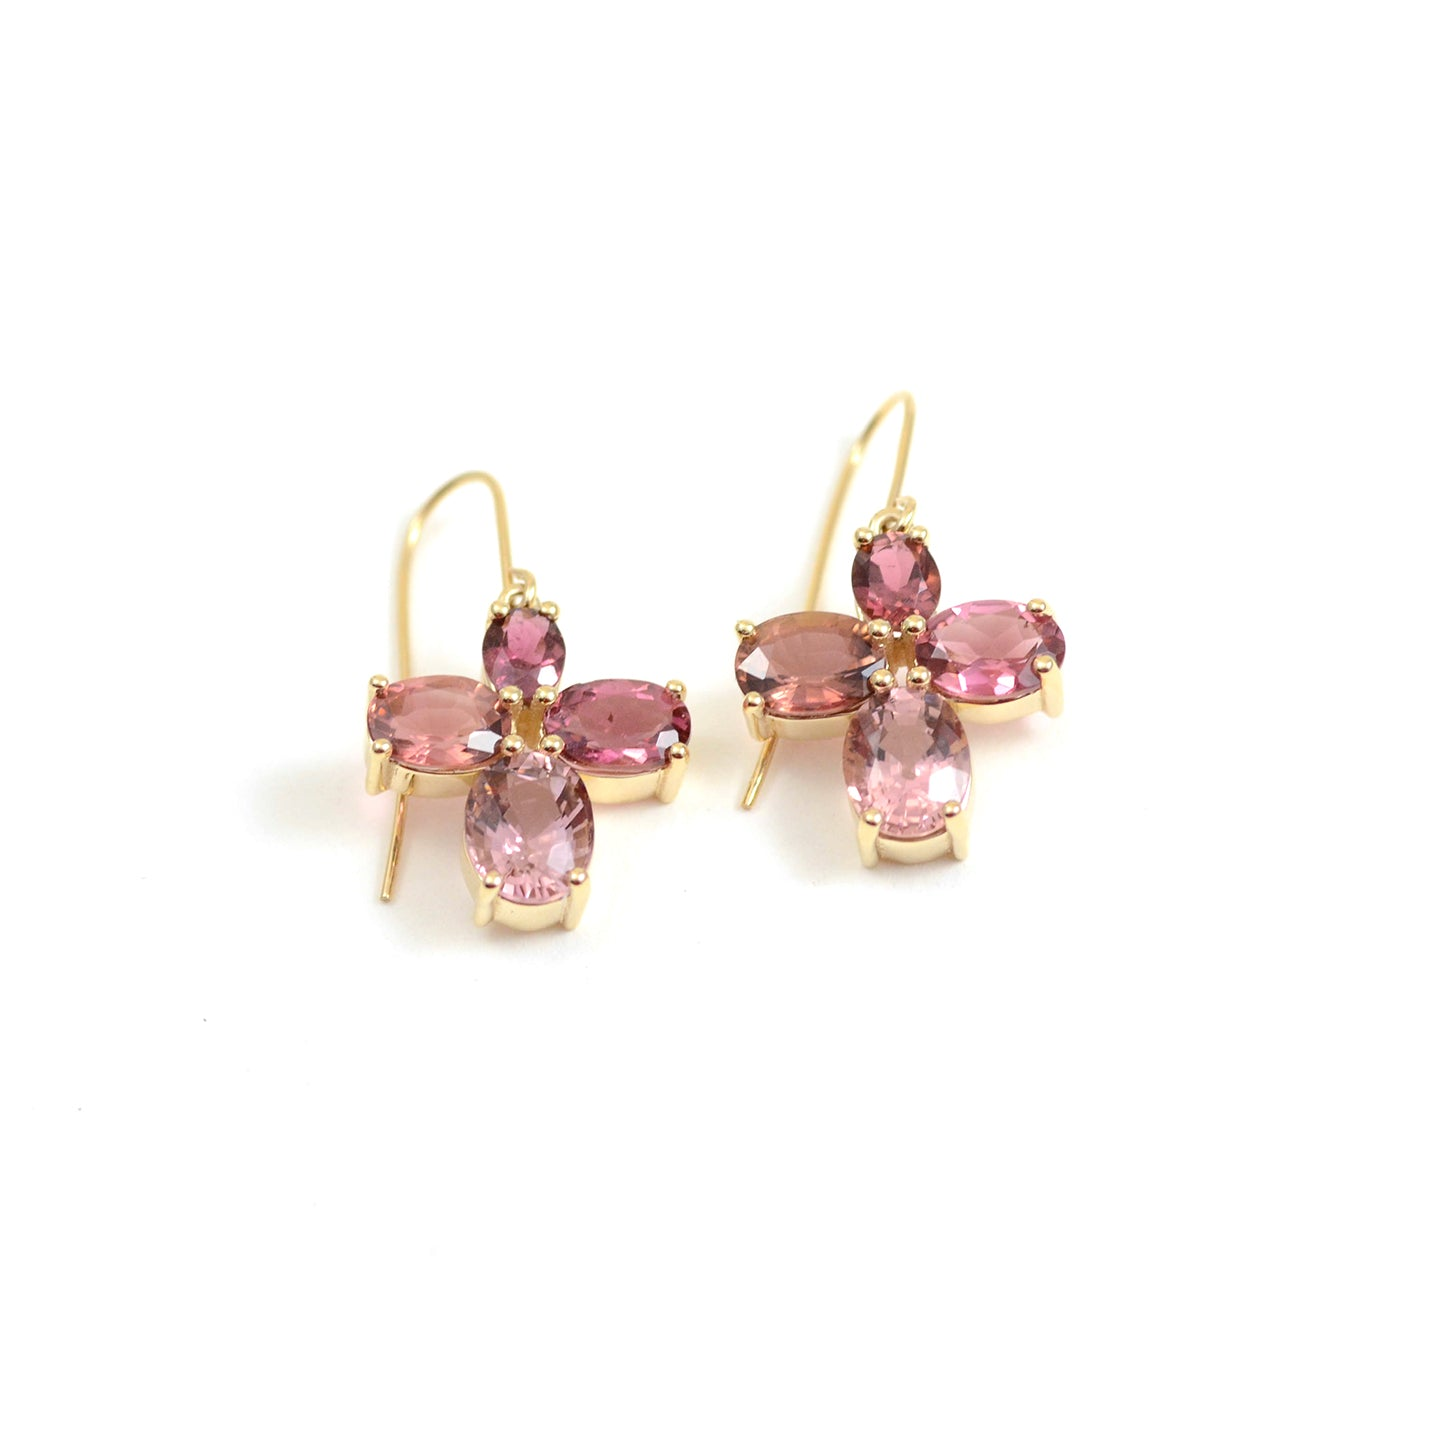 Pink Tourmaline Story Earrings